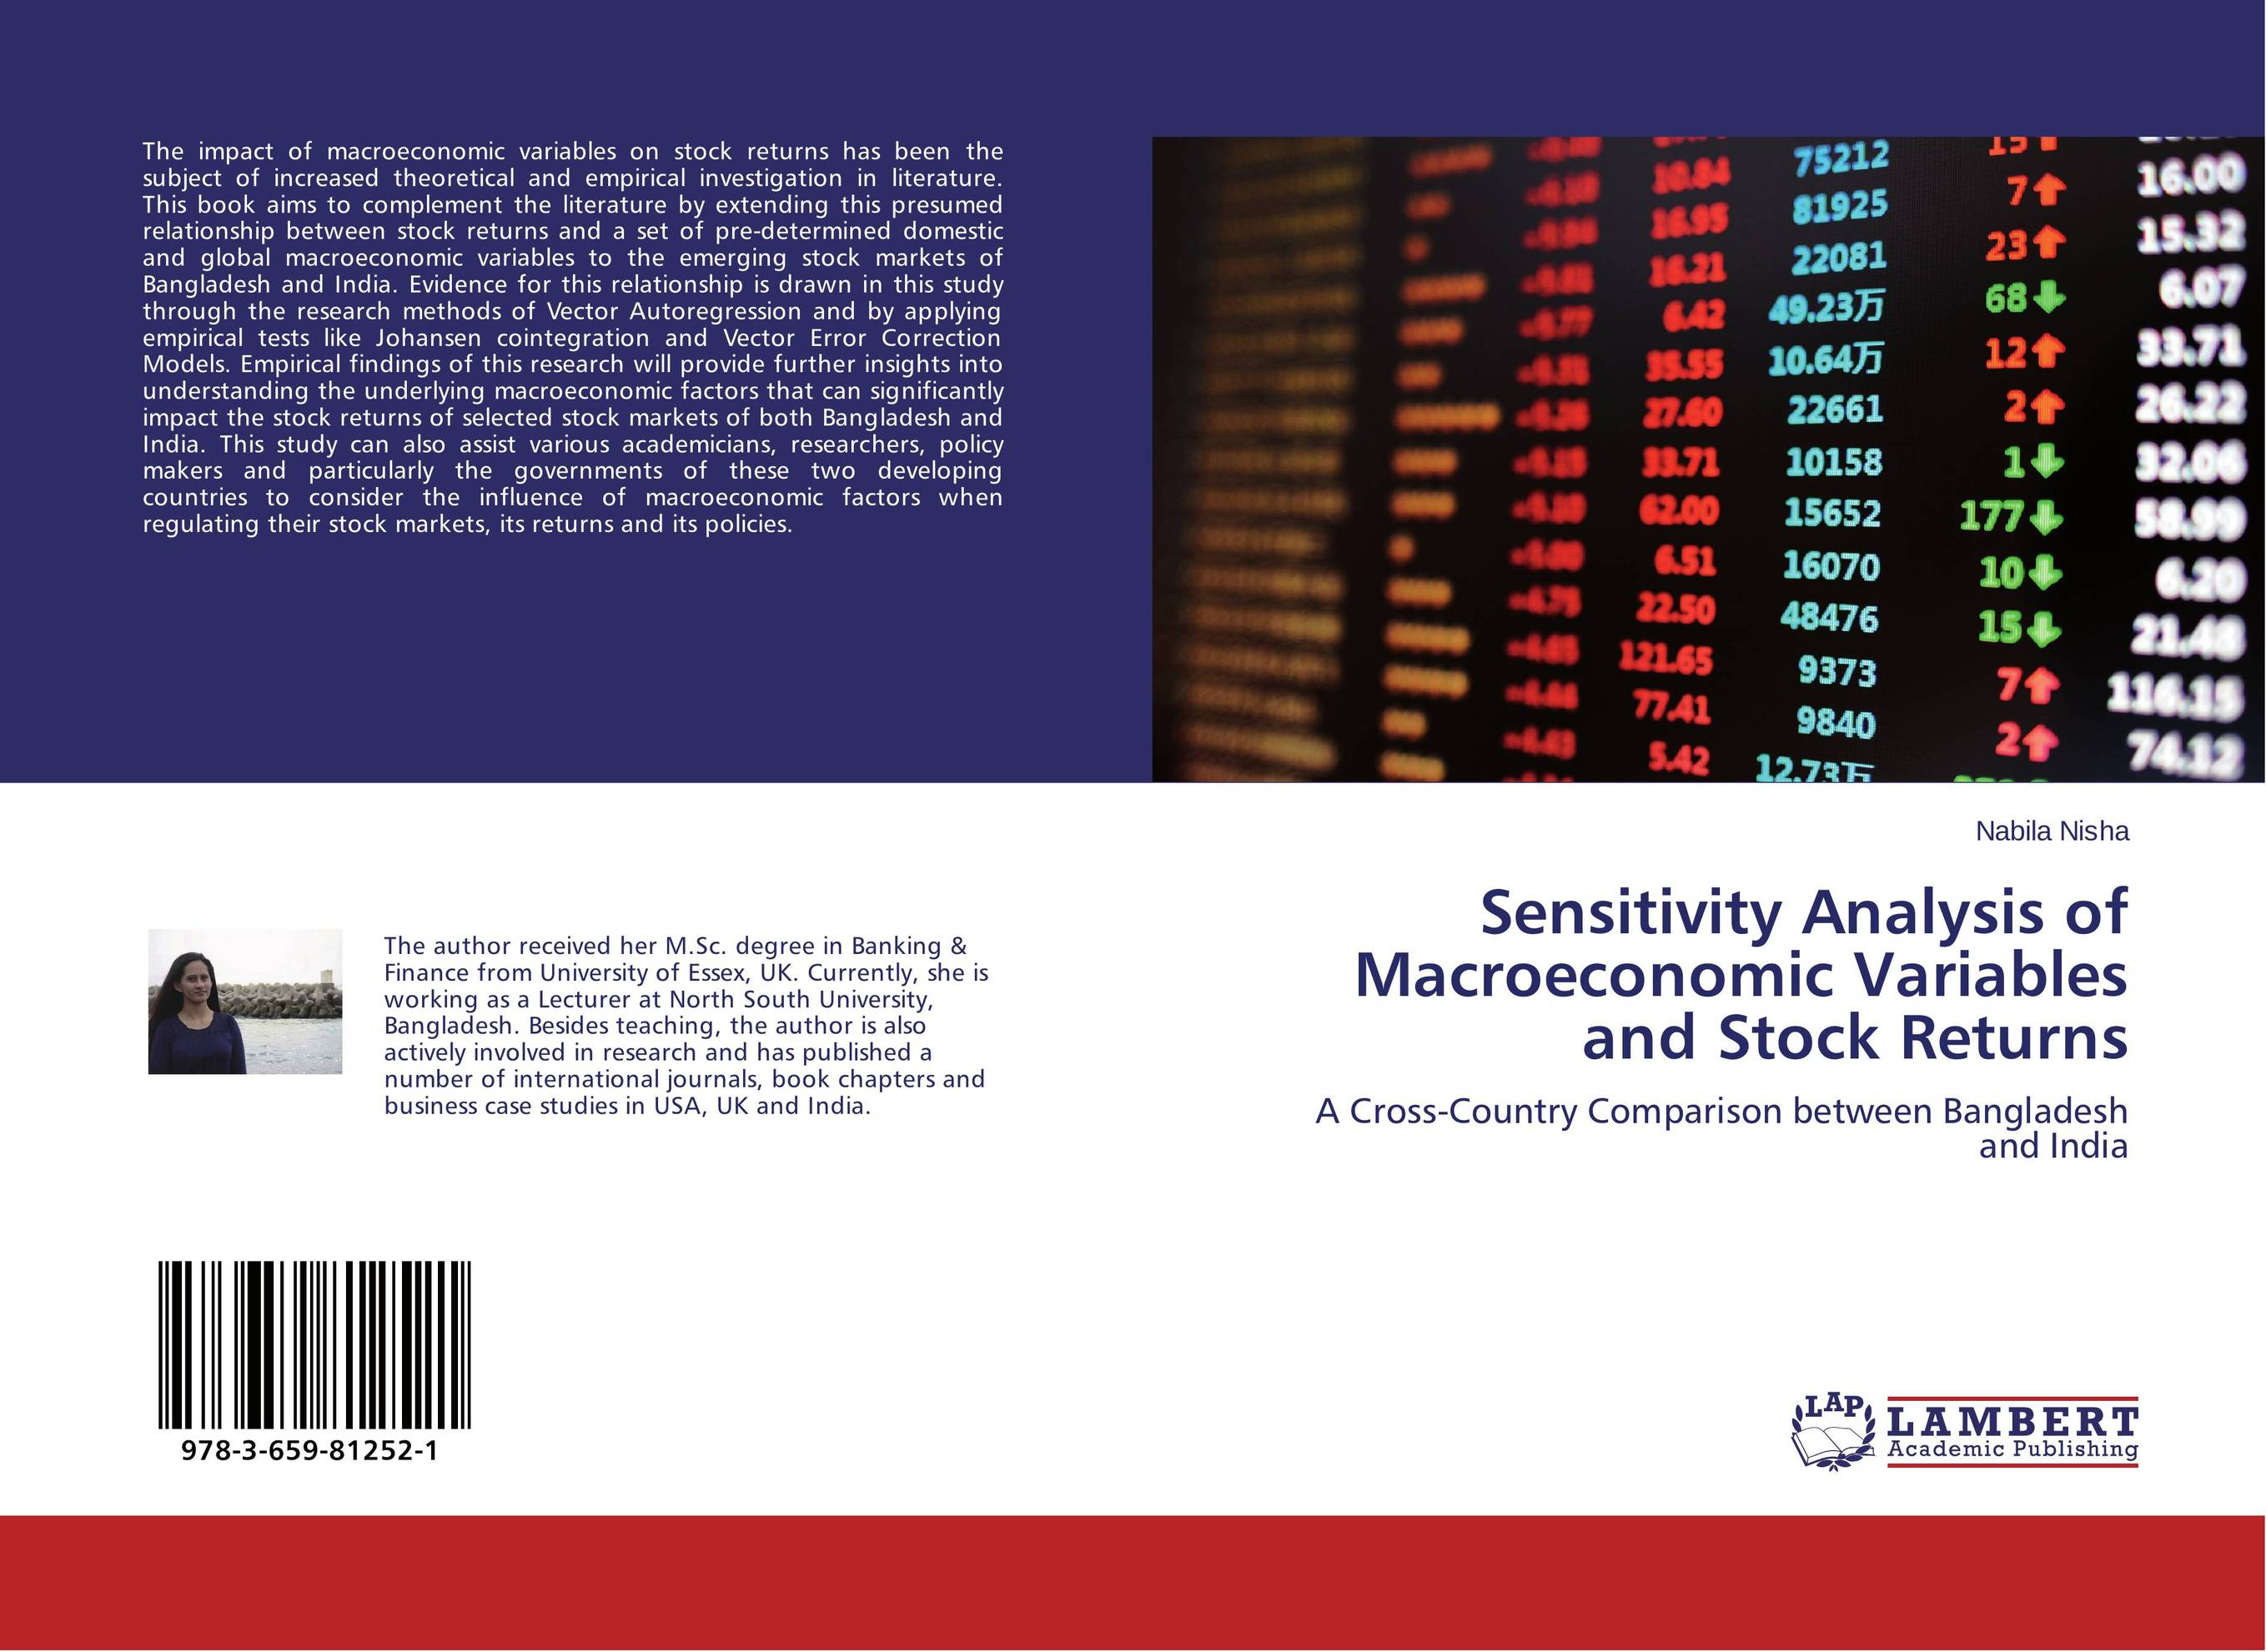 Sensitivity Analysis of Macroeconomic Variables and Stock Returns dr babar zaheer butt and dr kashif ur rehman economic factors and stock returns sectoral analysis